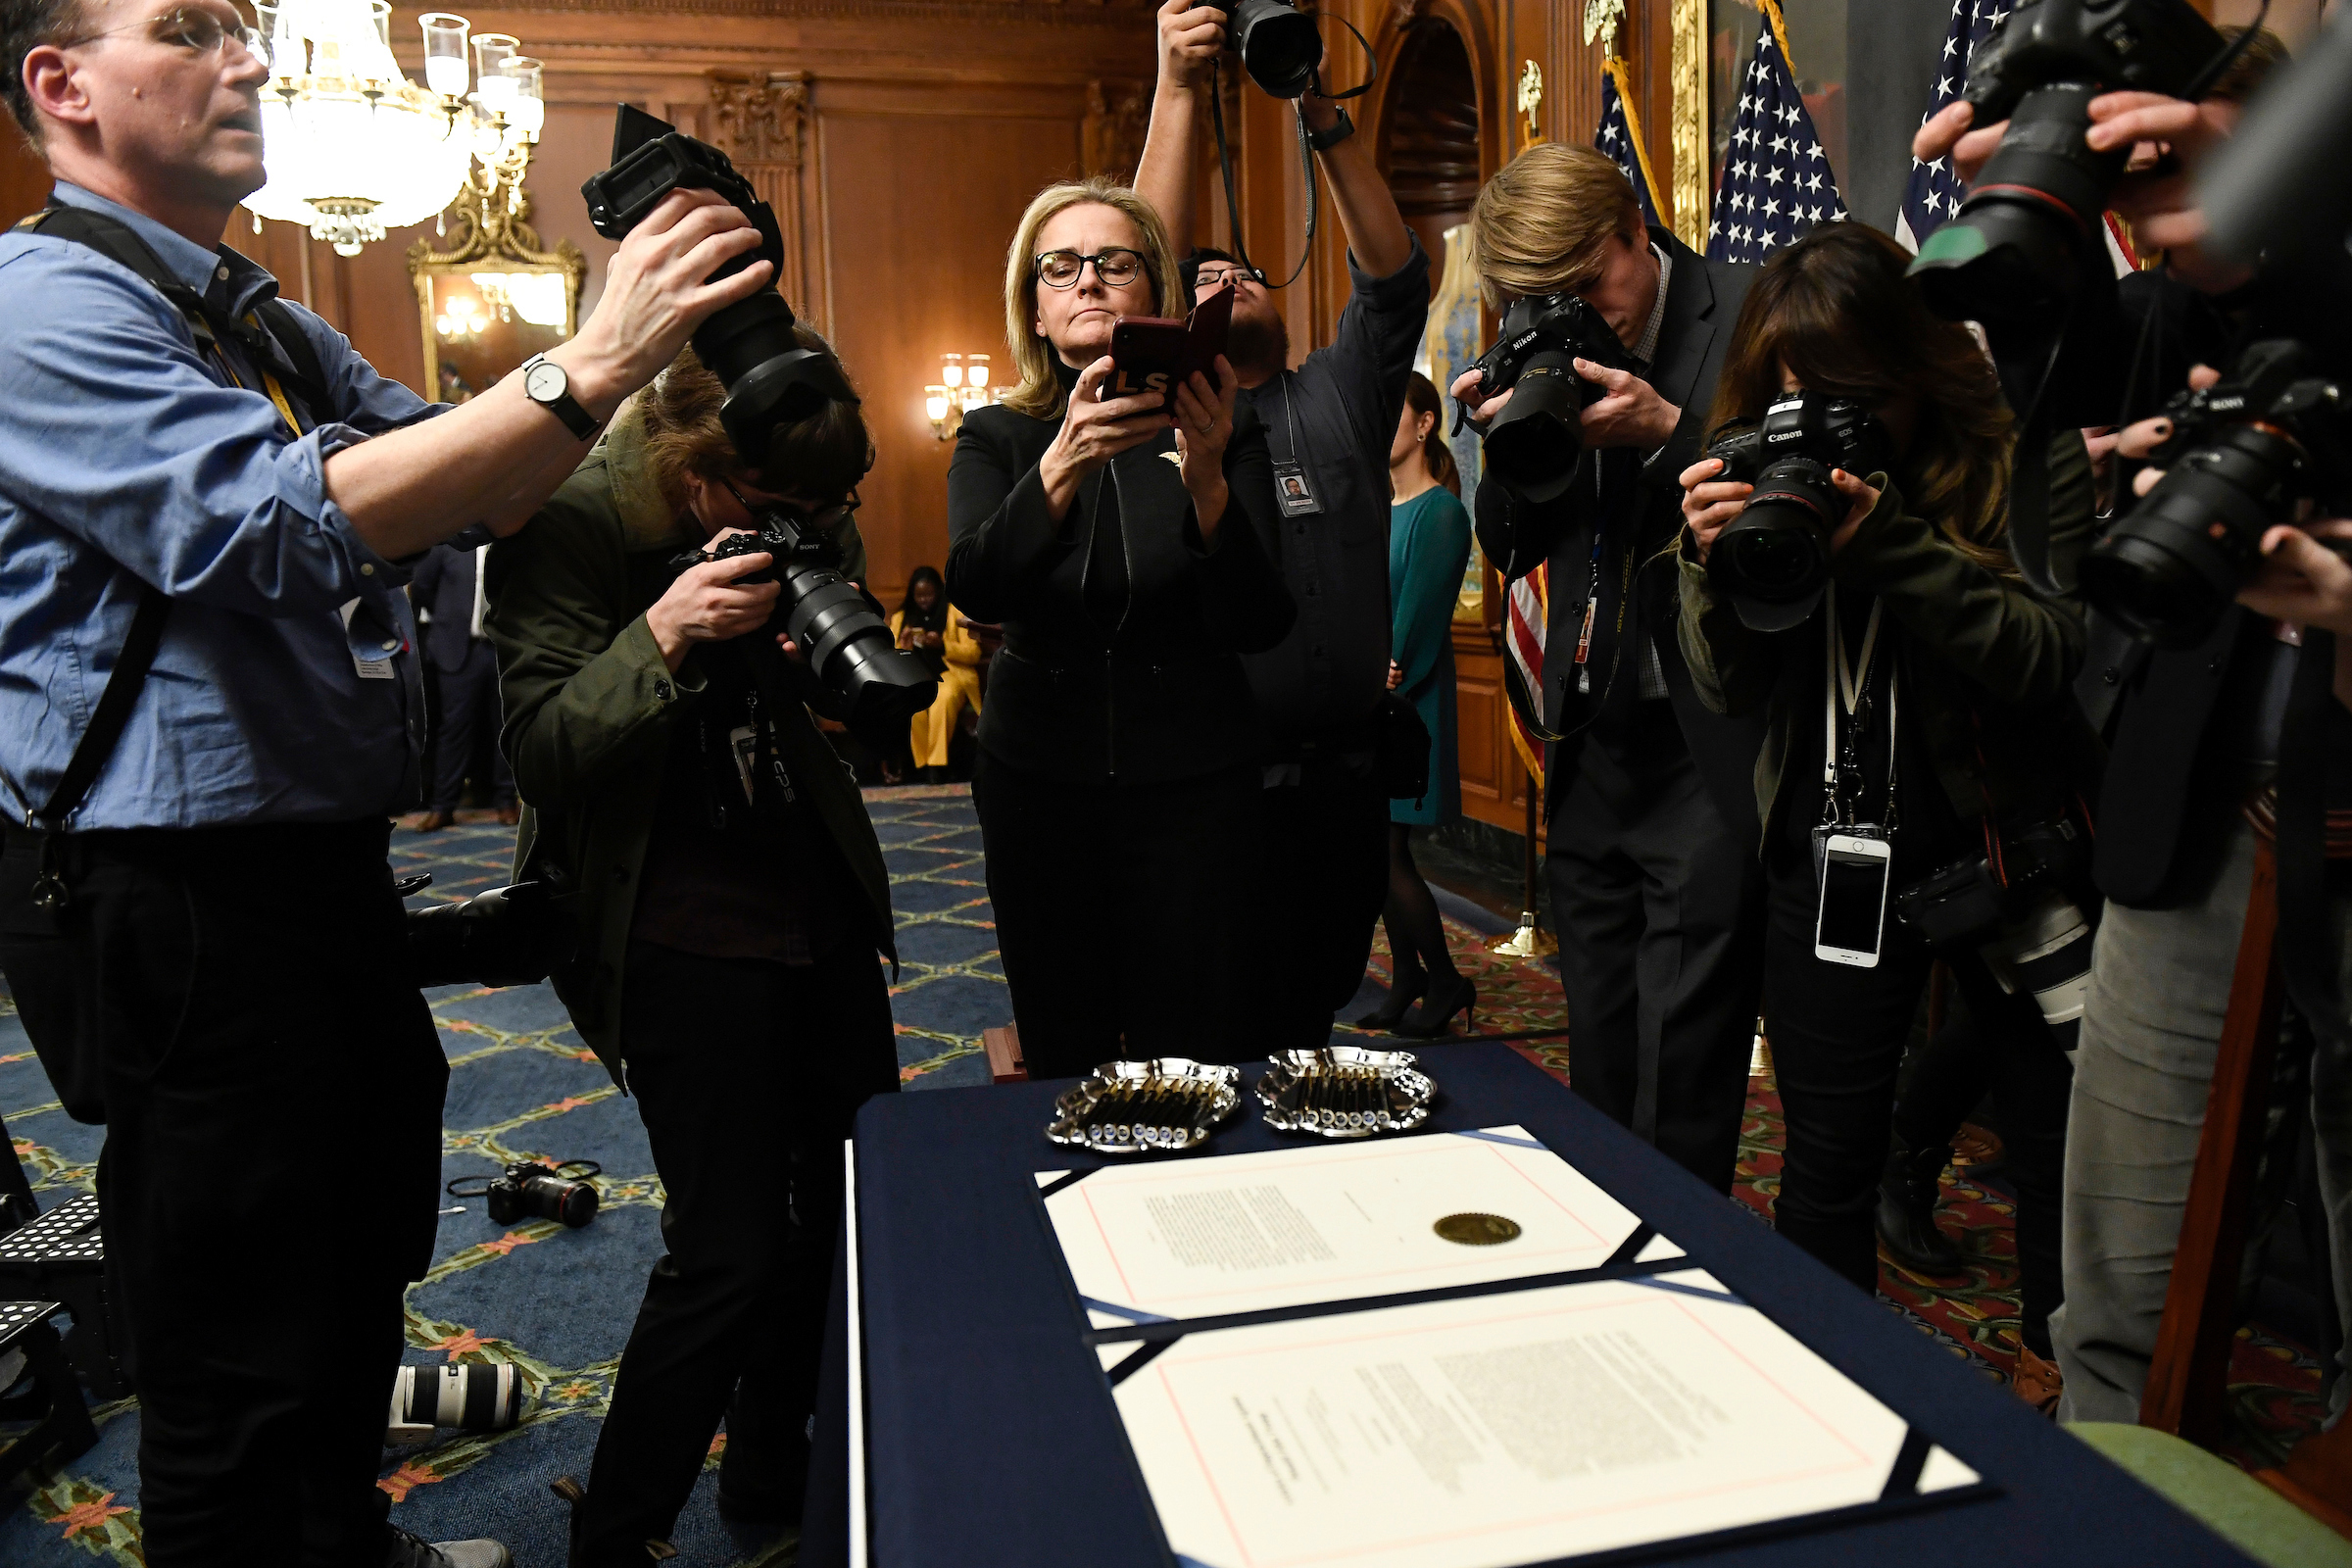 Members of Congress are just like us. Rep. Madeleine Dean snaps a shot of the articles of impeachment on Wednesday. (Caroline Brehman/CQ Roll Call)